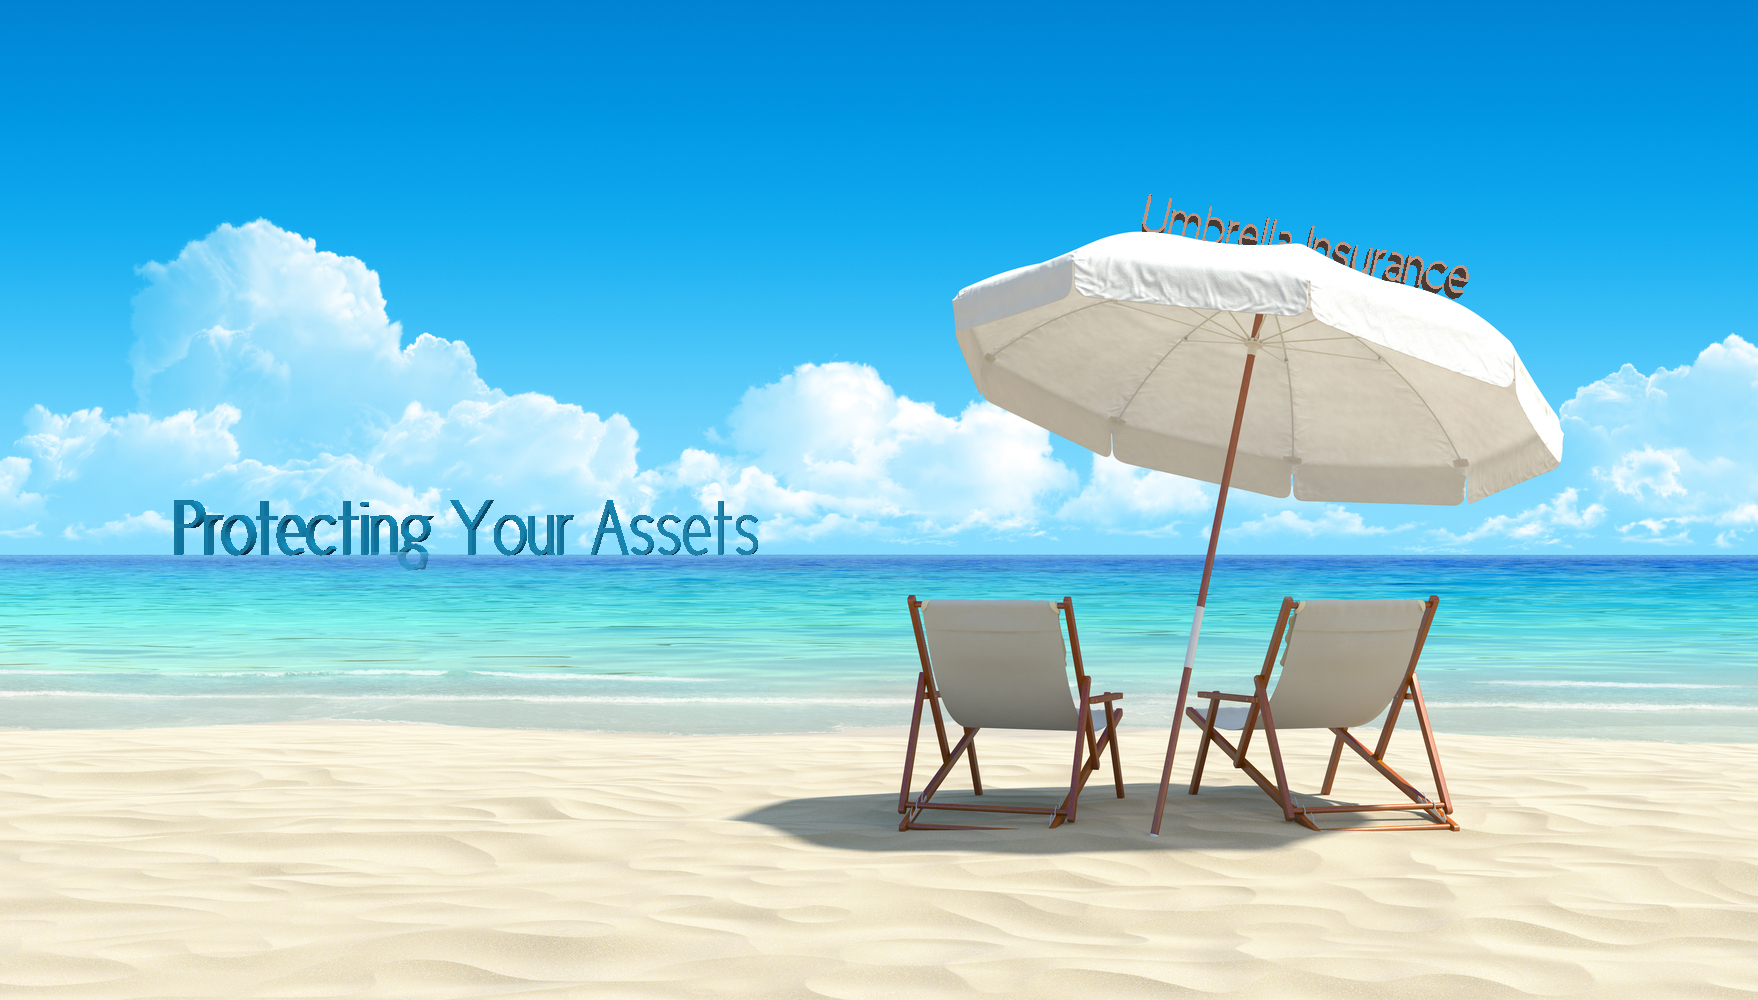 Protecting Your Assets – Why You Need Umbrella Insurance